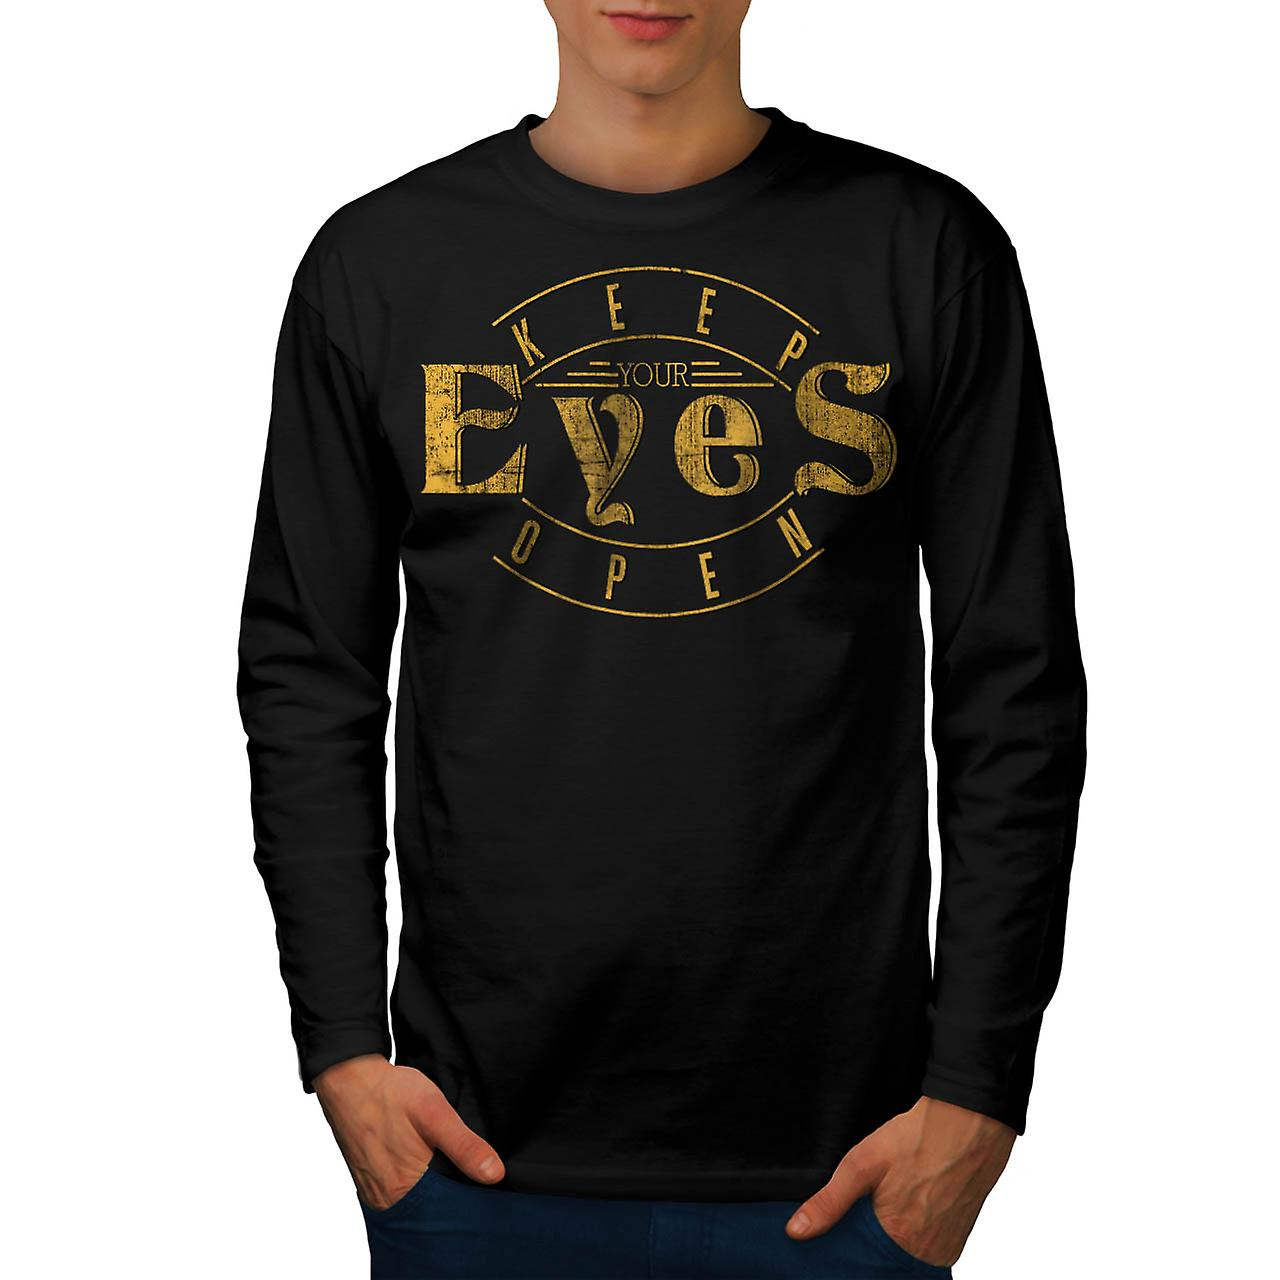 Keep Your Eyes Open Watch World Men Black Long Sleeve T-shirt | Wellcoda